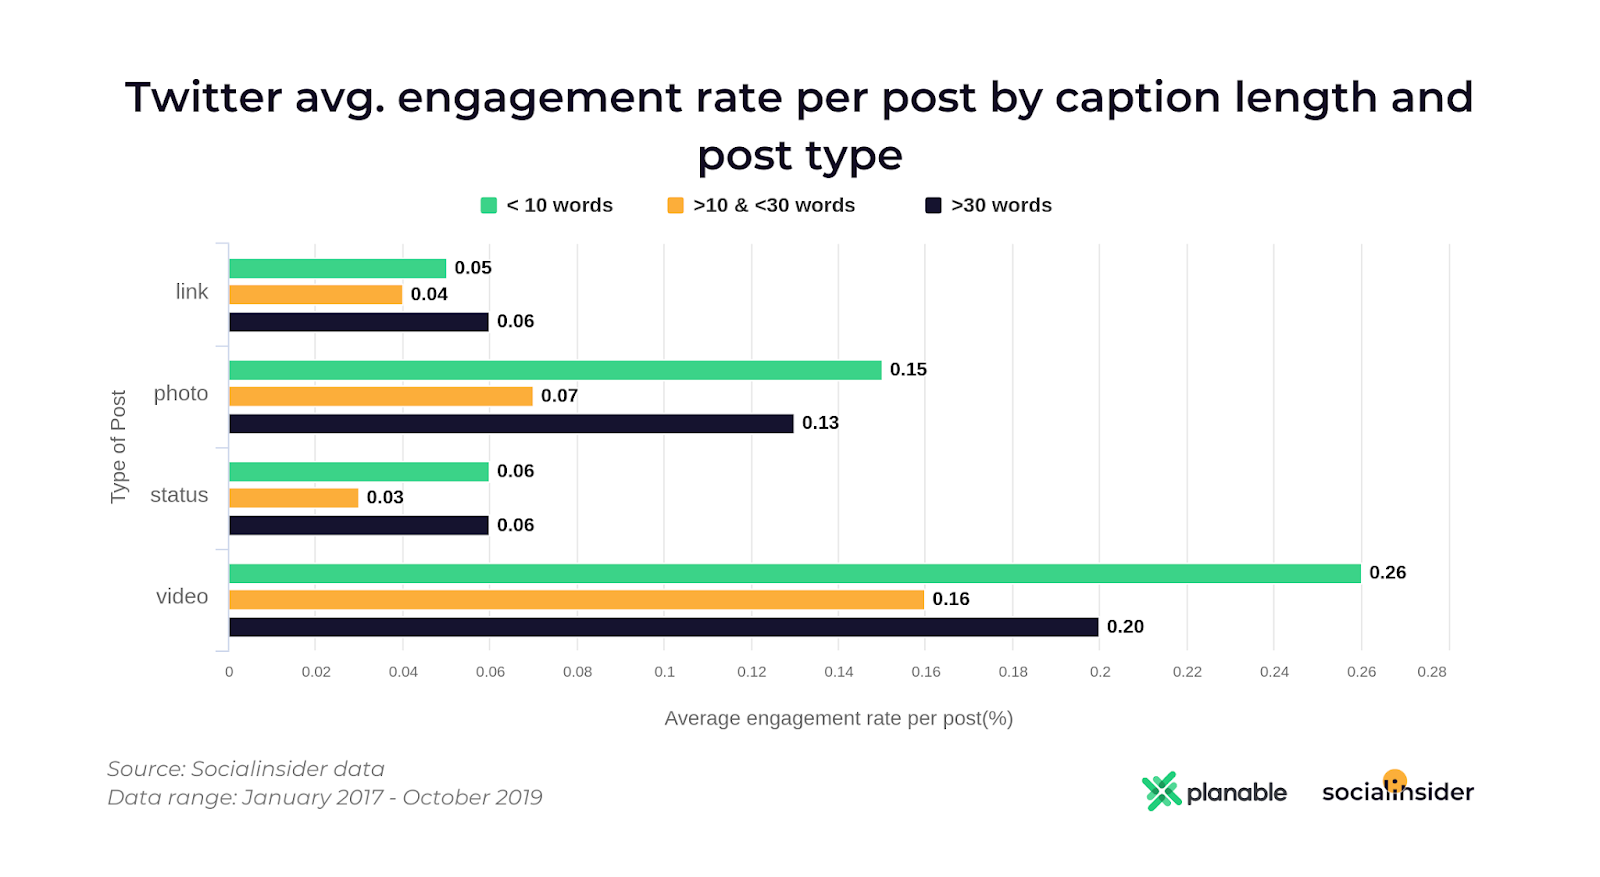 Twitter avg engagement by caption length and post type